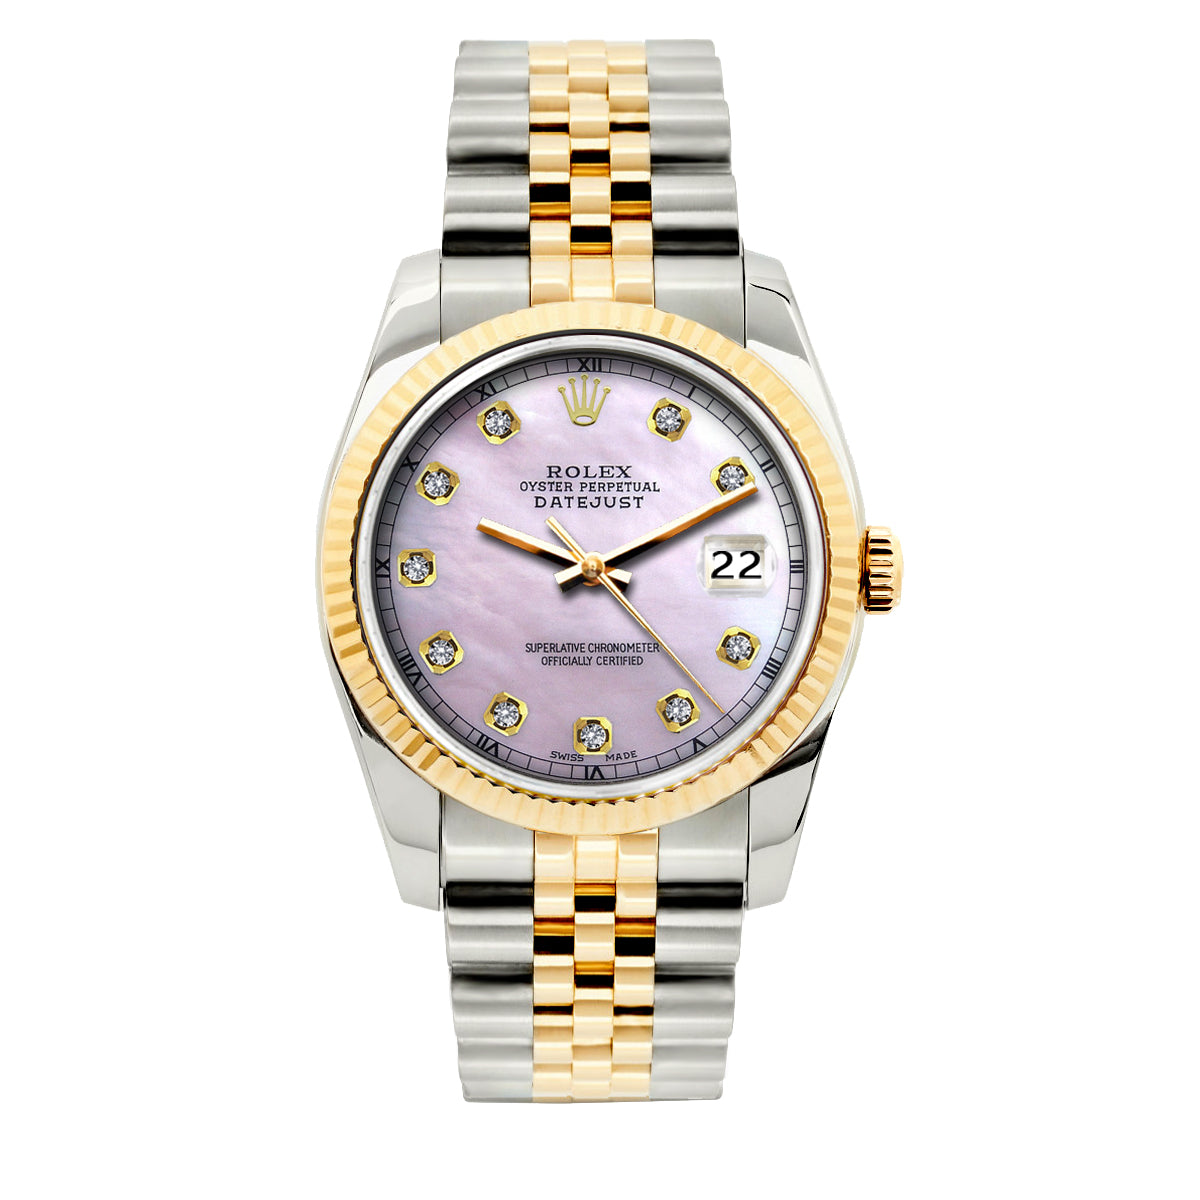 Rolex Datejust 36mm Yellow Gold and Stainless Steel Bracelet Lavender Dial